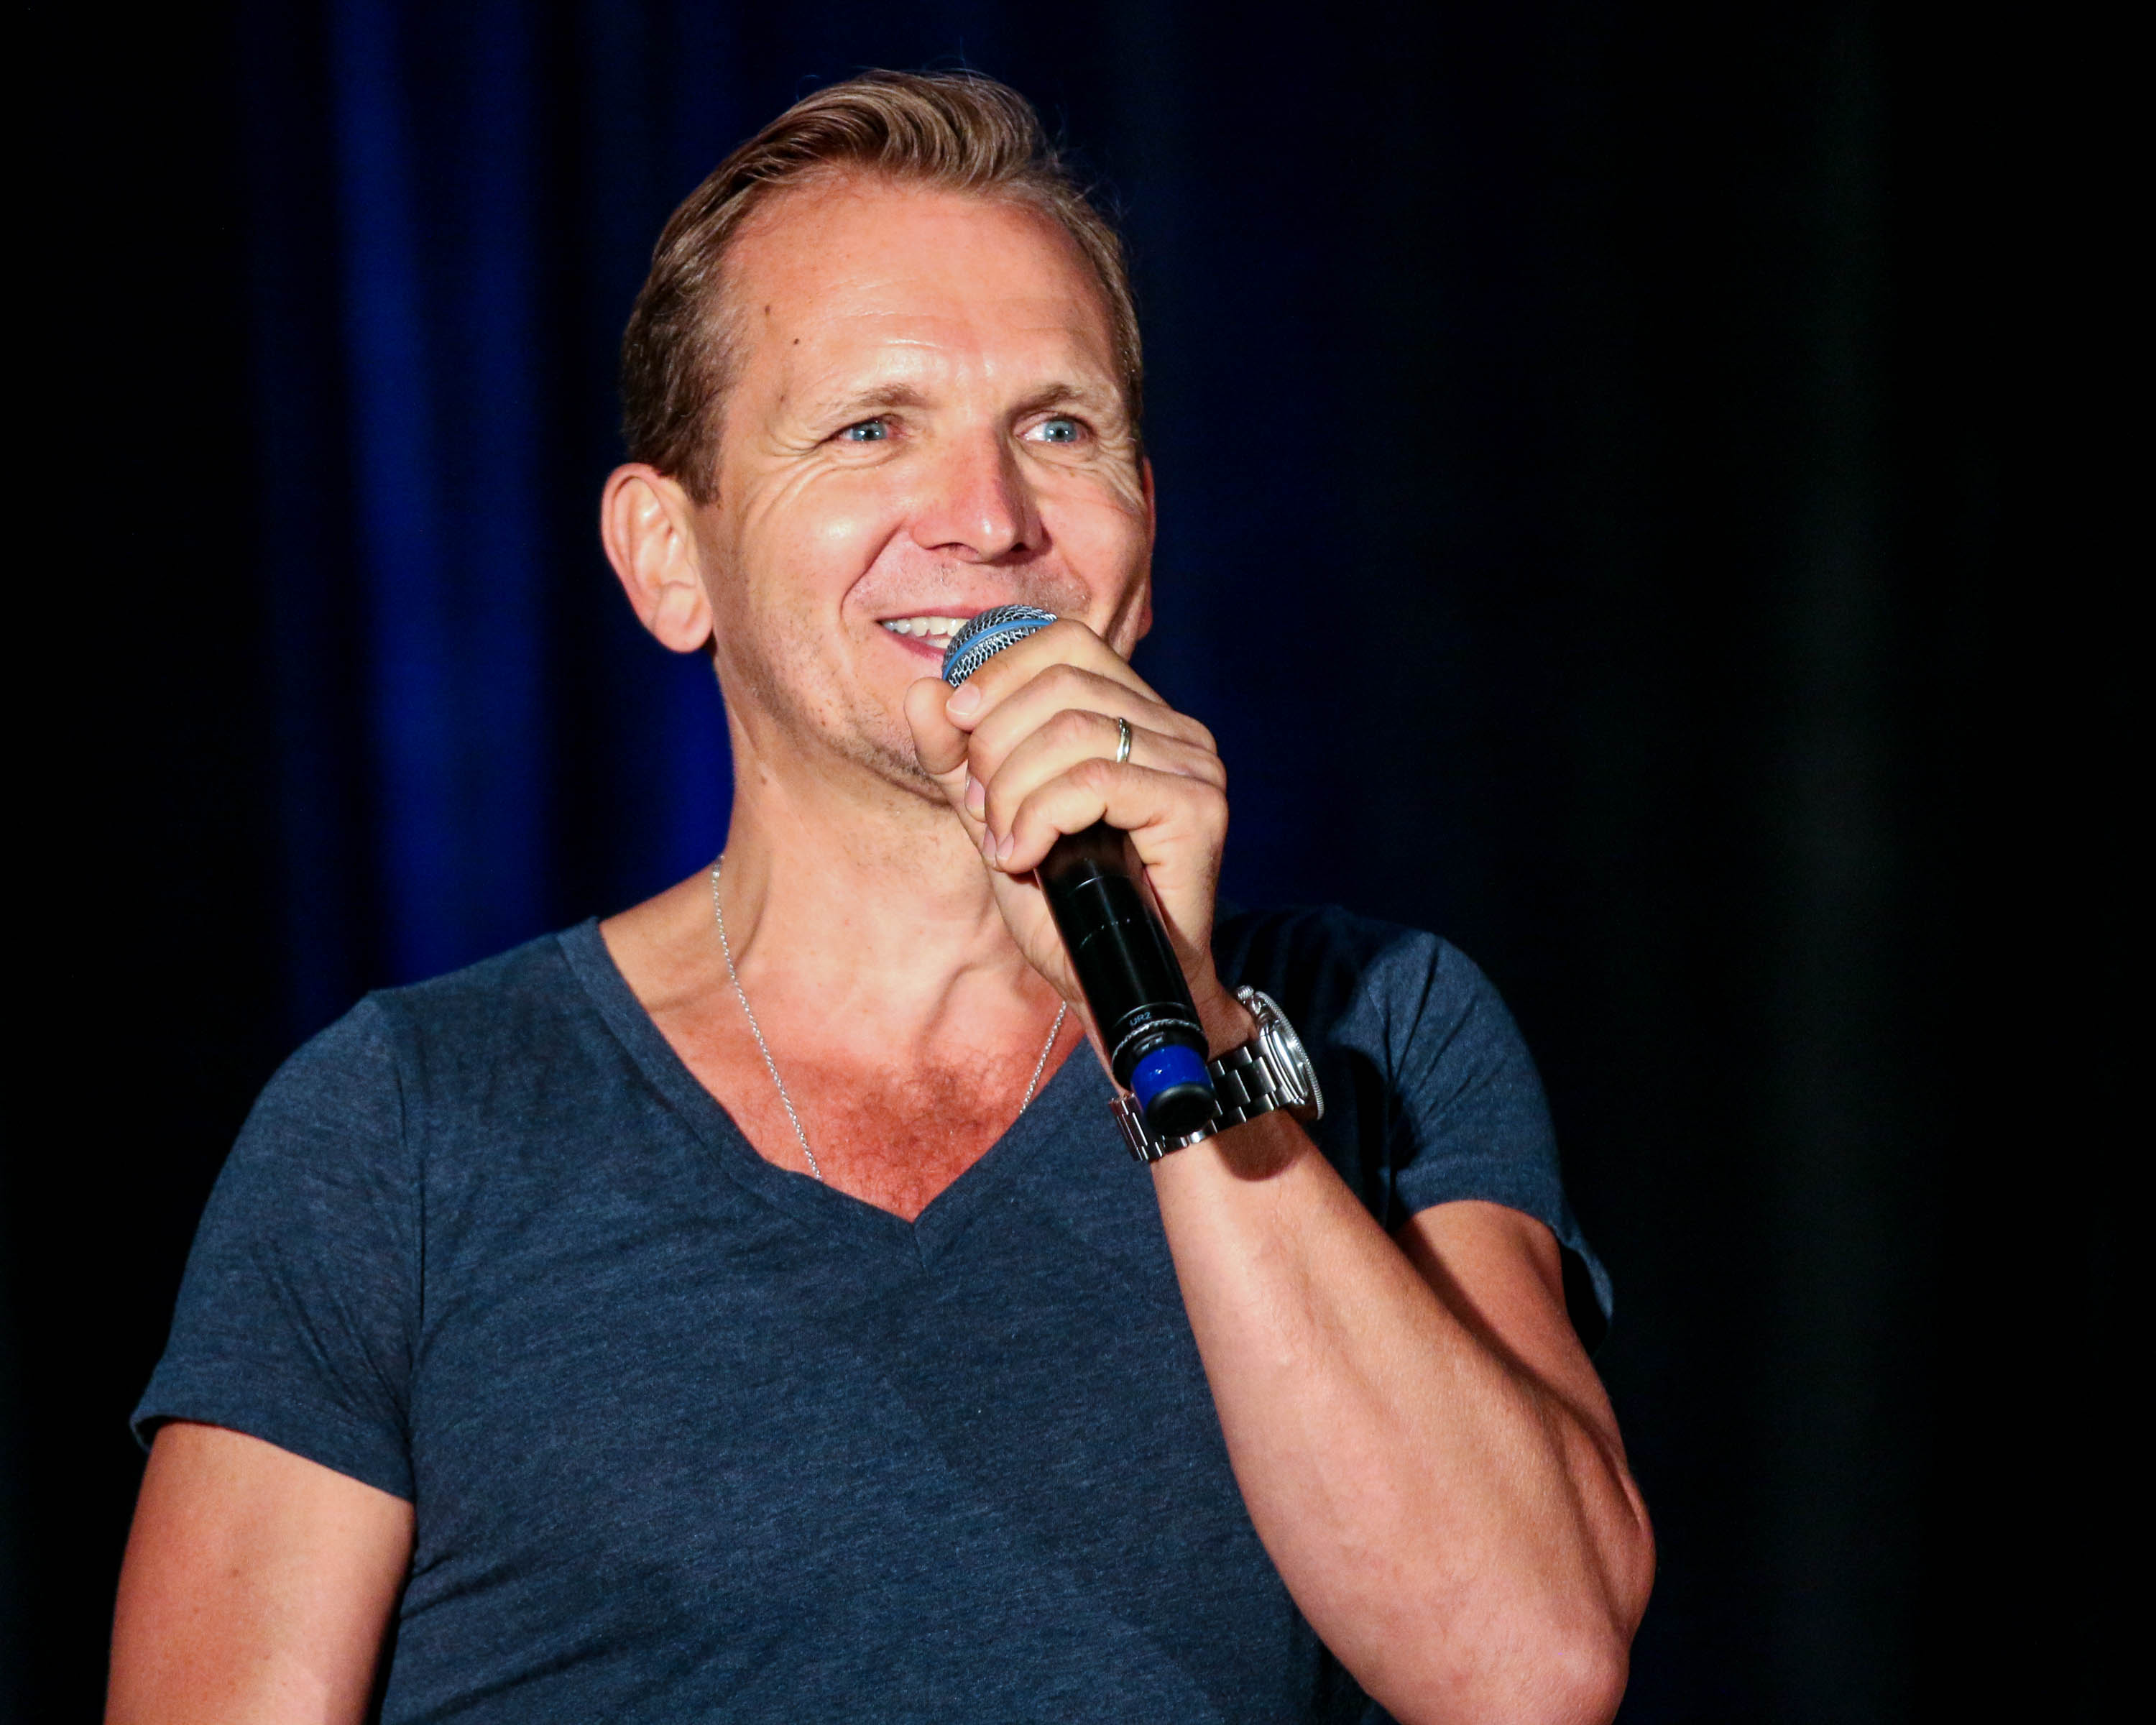 sebastian roche balthazar supernatural at convention 2016